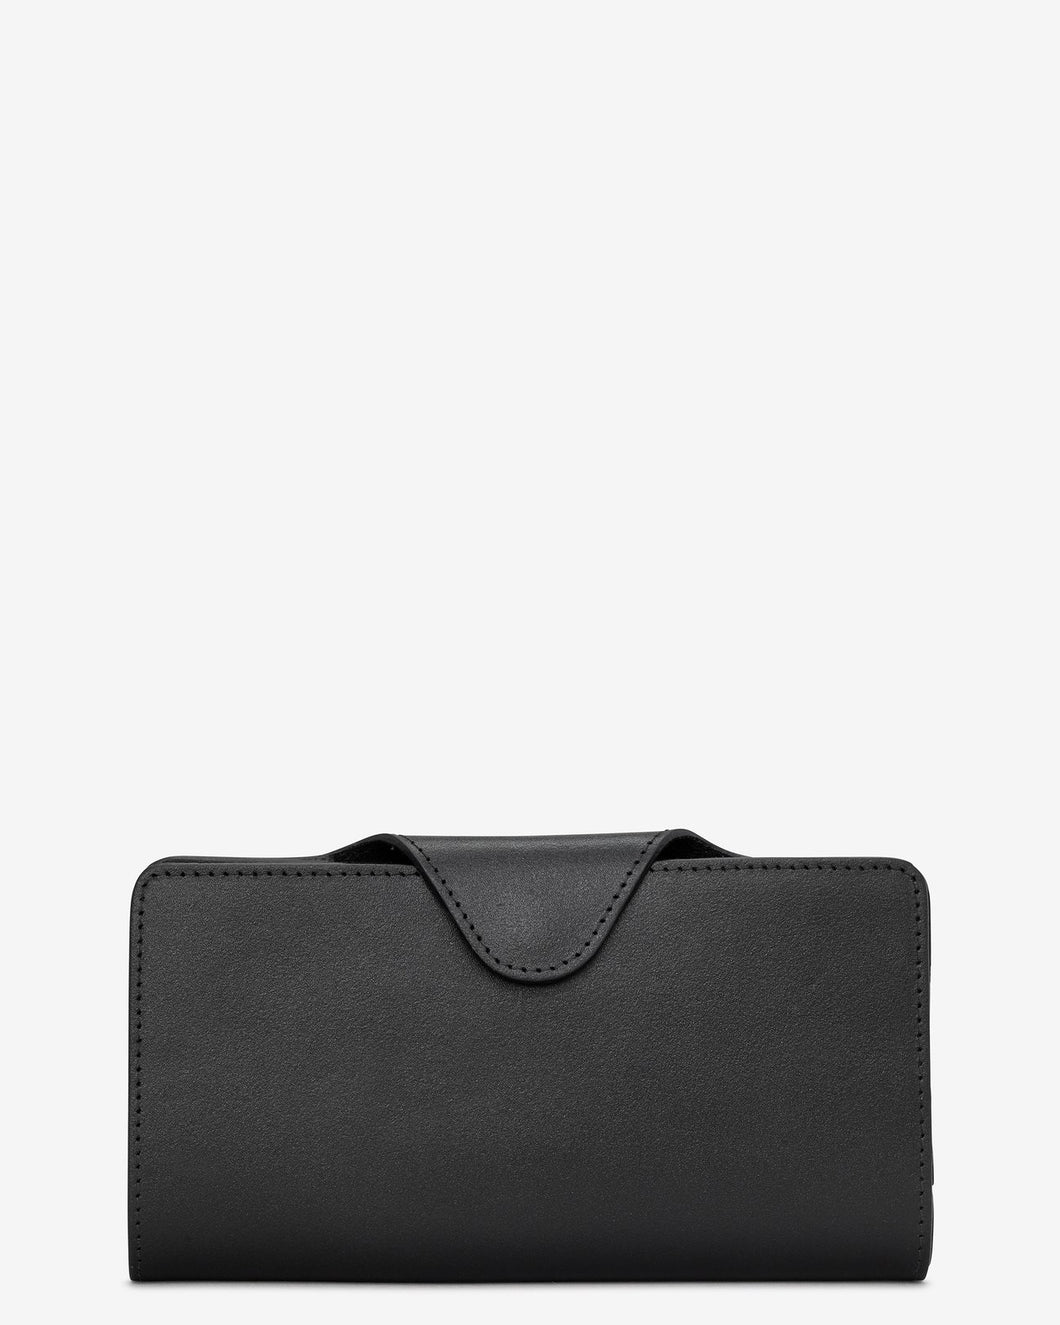 Yoshi Black Satchel Leather Purse - Sands Boutique clothing and gifts